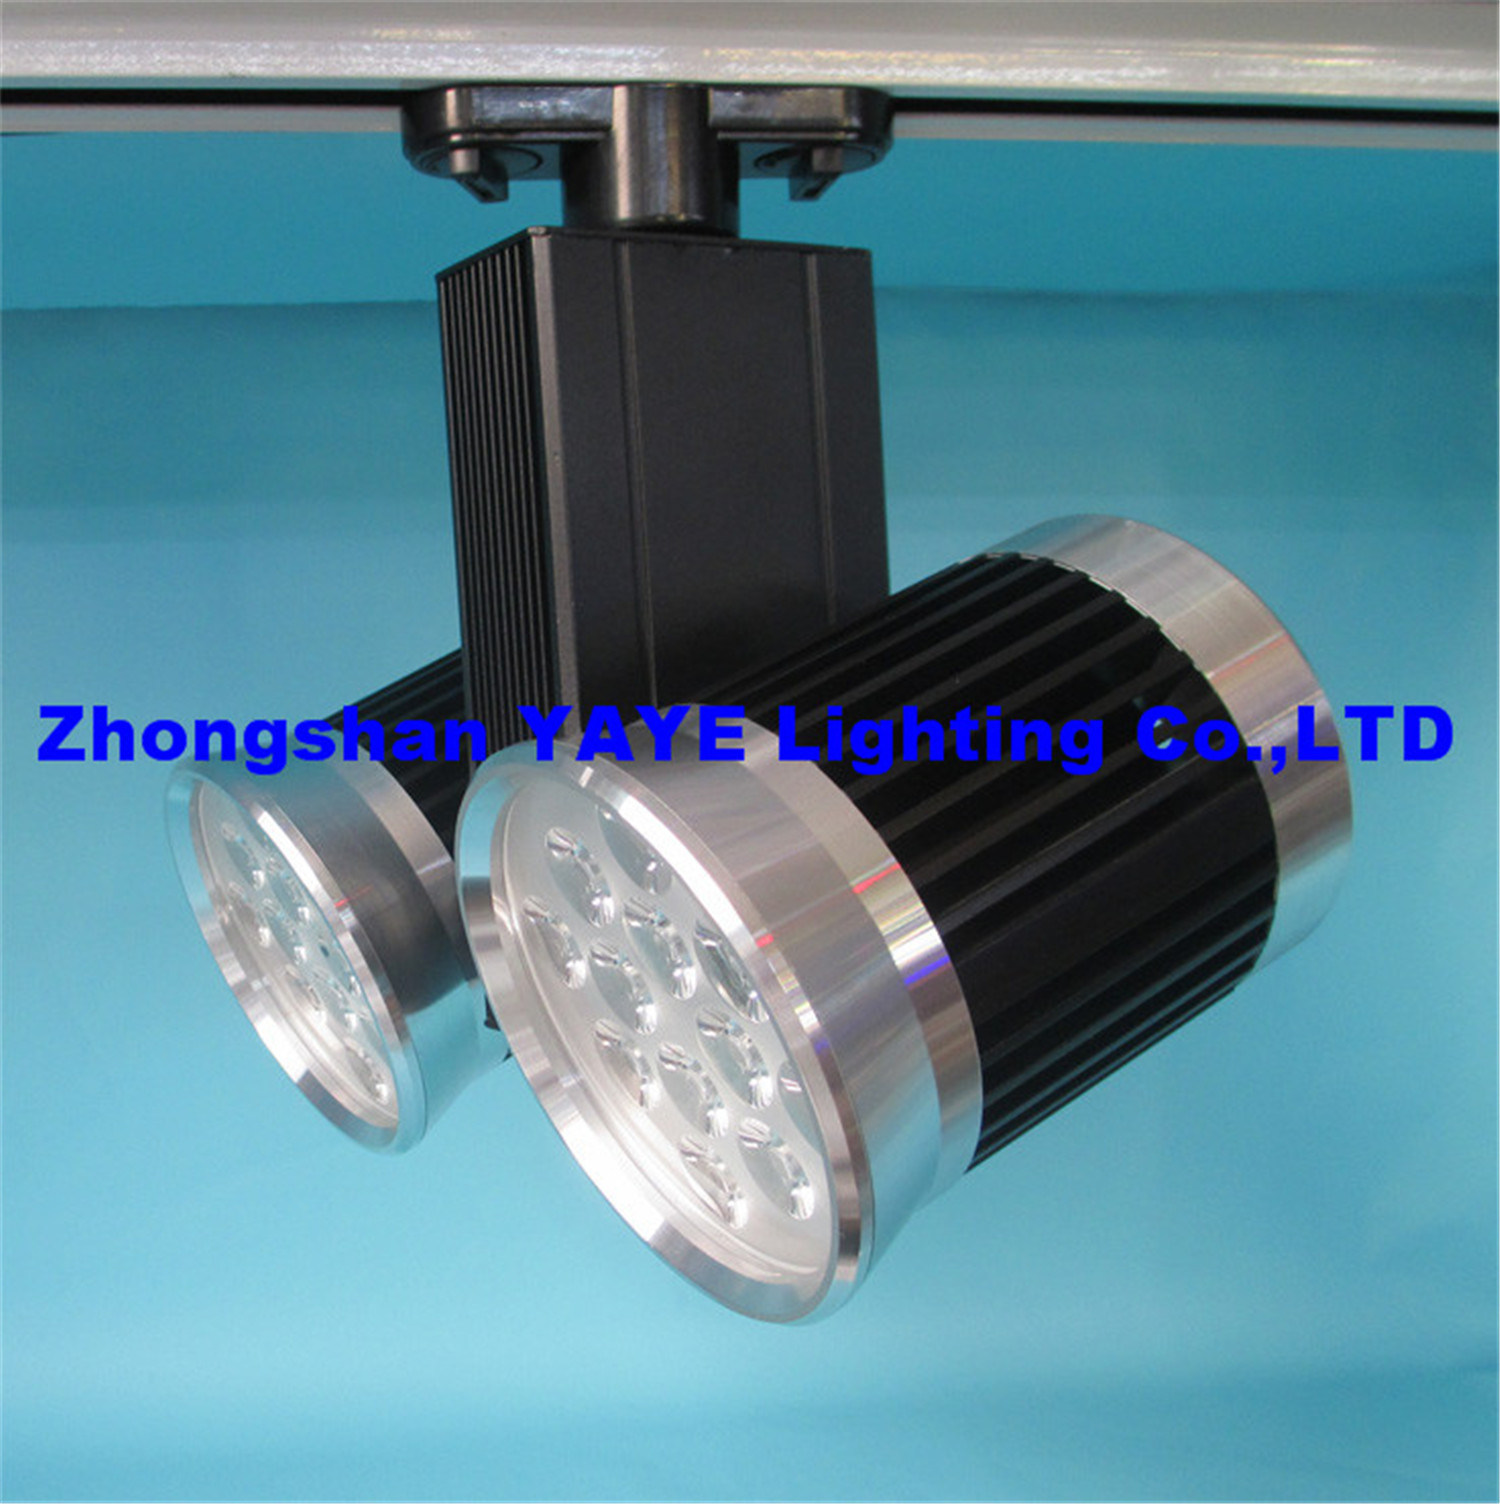 Yaye Hot Sell CE/RoHS Approved Competitive Price 24W LED Track Lighting with 3 Years Warranty